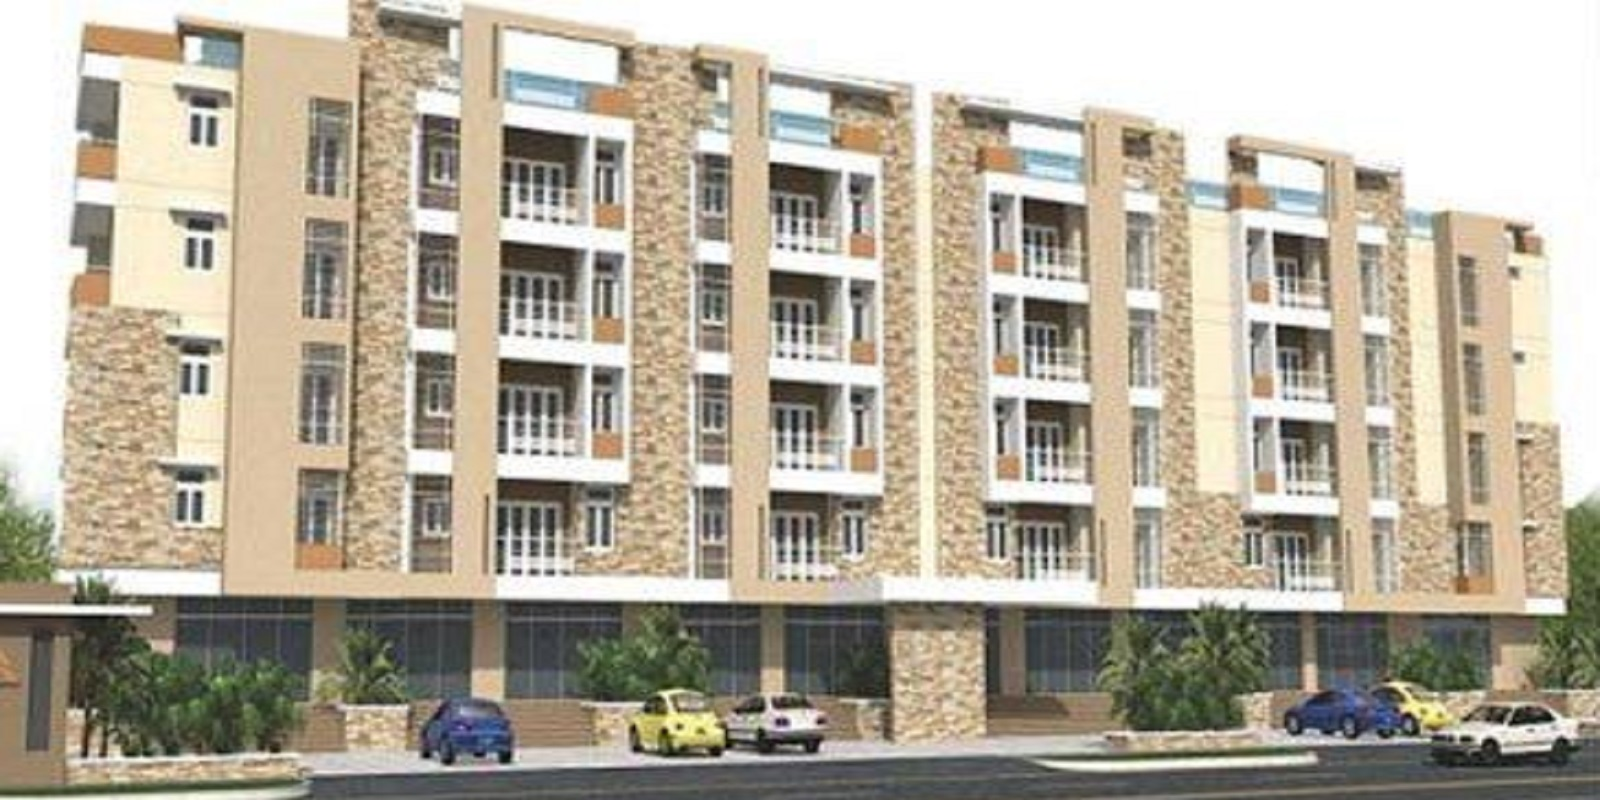 tgs california project project large image1